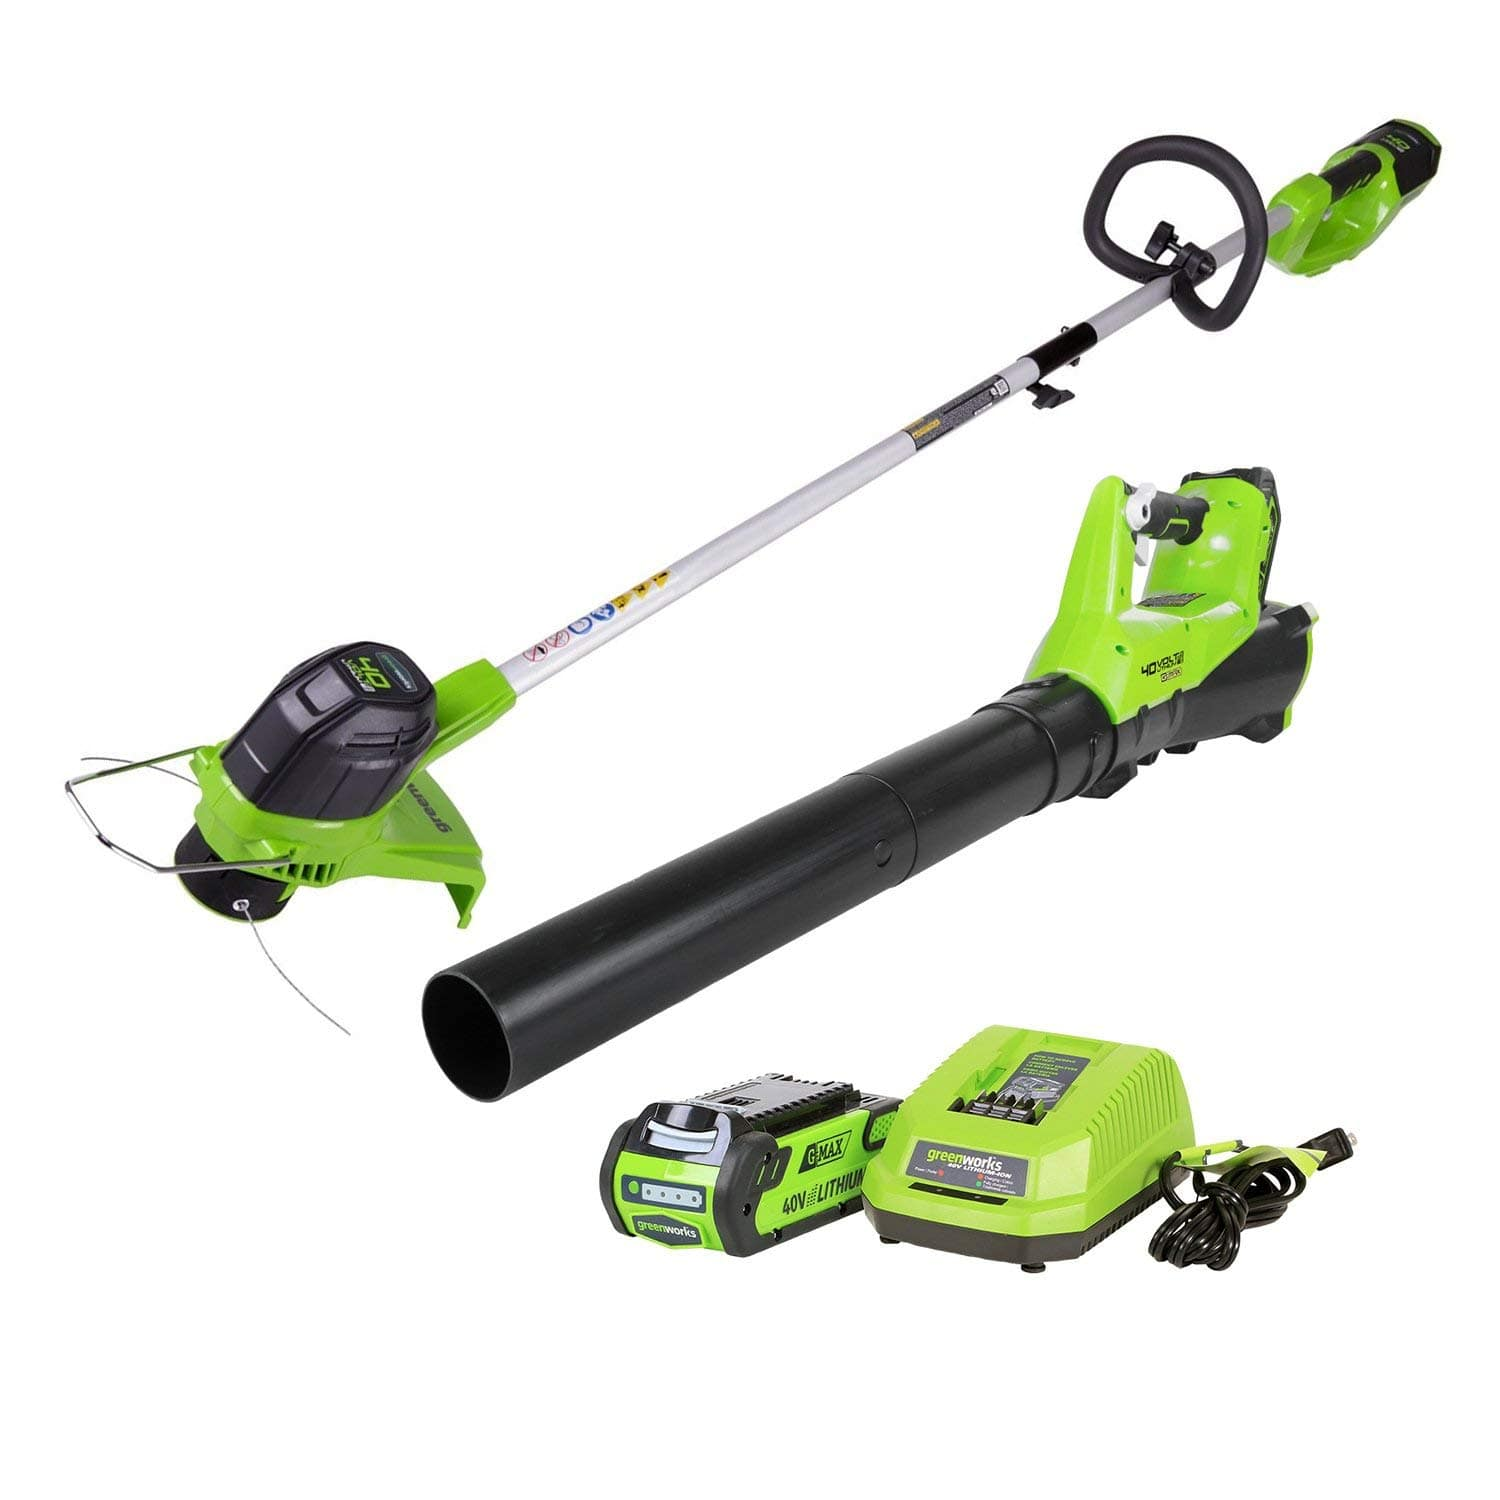 GreenWorks G-MAX 40V Cordless String Trimmer + Blower Combo w/ 40V 2Ah Li-Ion Battery/Charger $127.99 + Free Shipping via Amazon